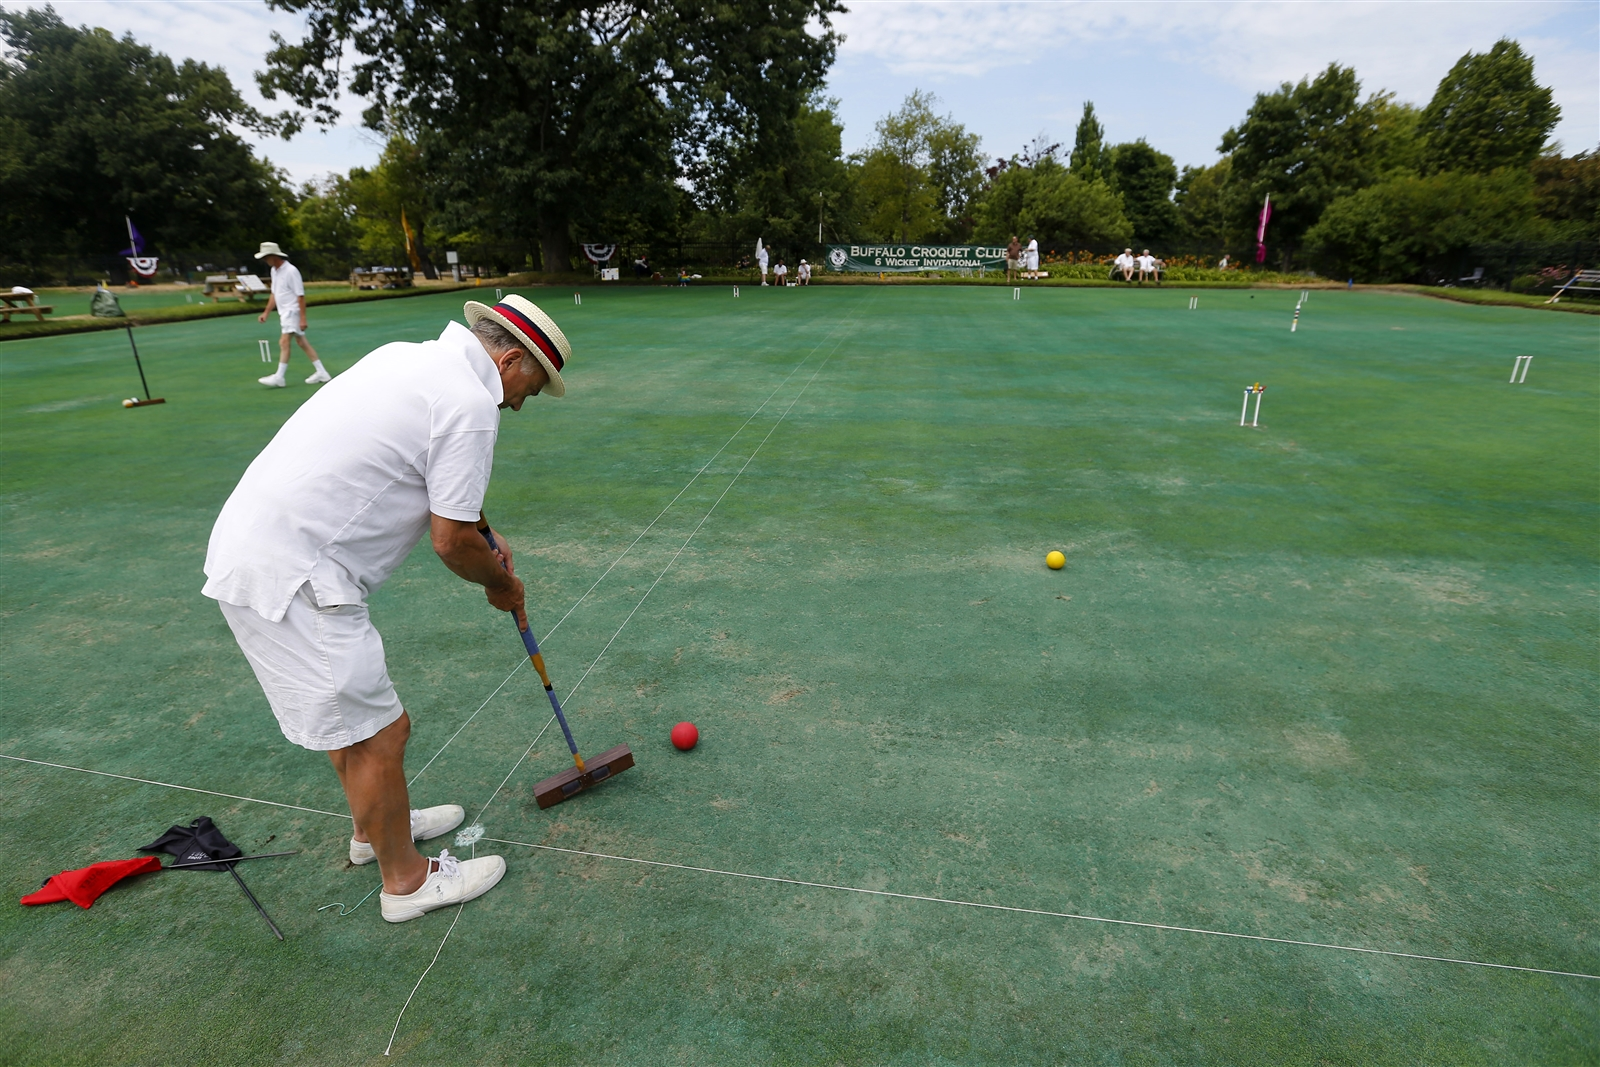 Jim Irwin of Geneseo strikes the ball during the Buffalo Croquet Club Inaugural 6-Wicket Invitational at Delaware Park Saturday.